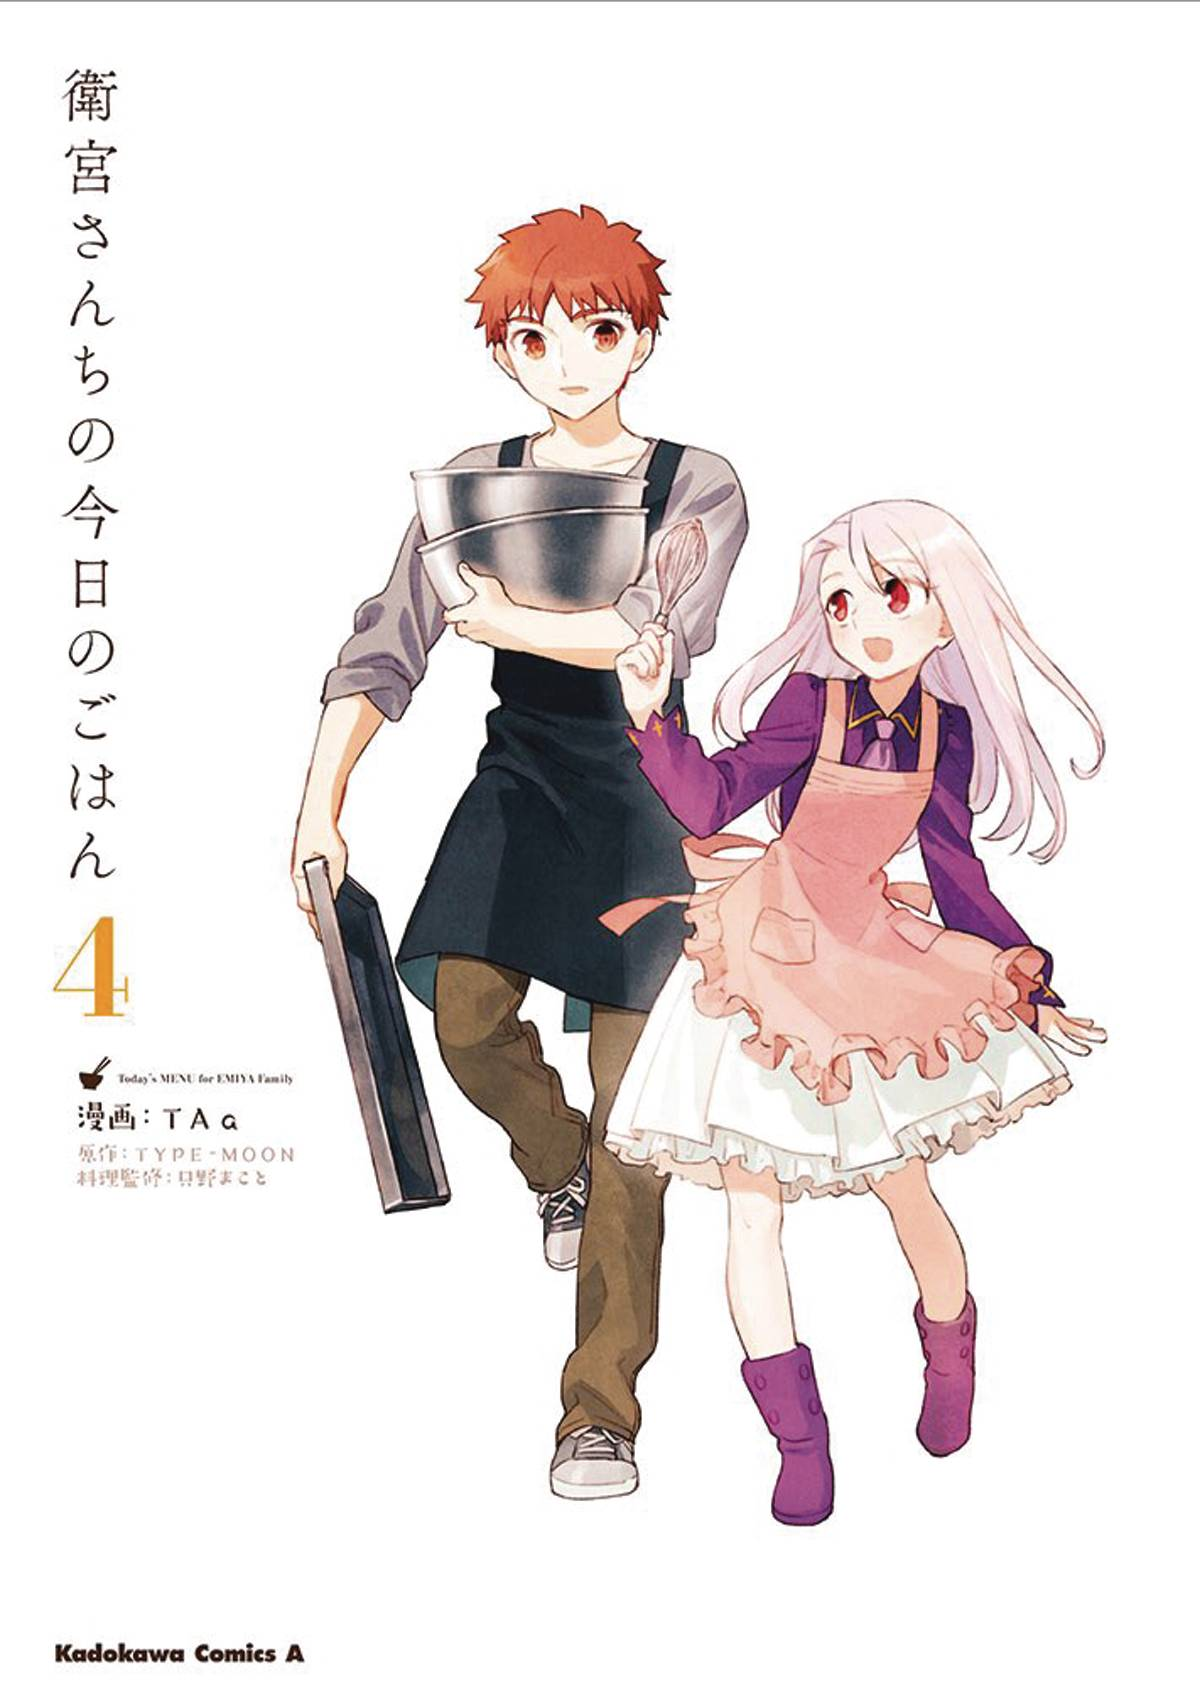 TODAYS MENU FOR EMIYA FAMILY GN VOL 04